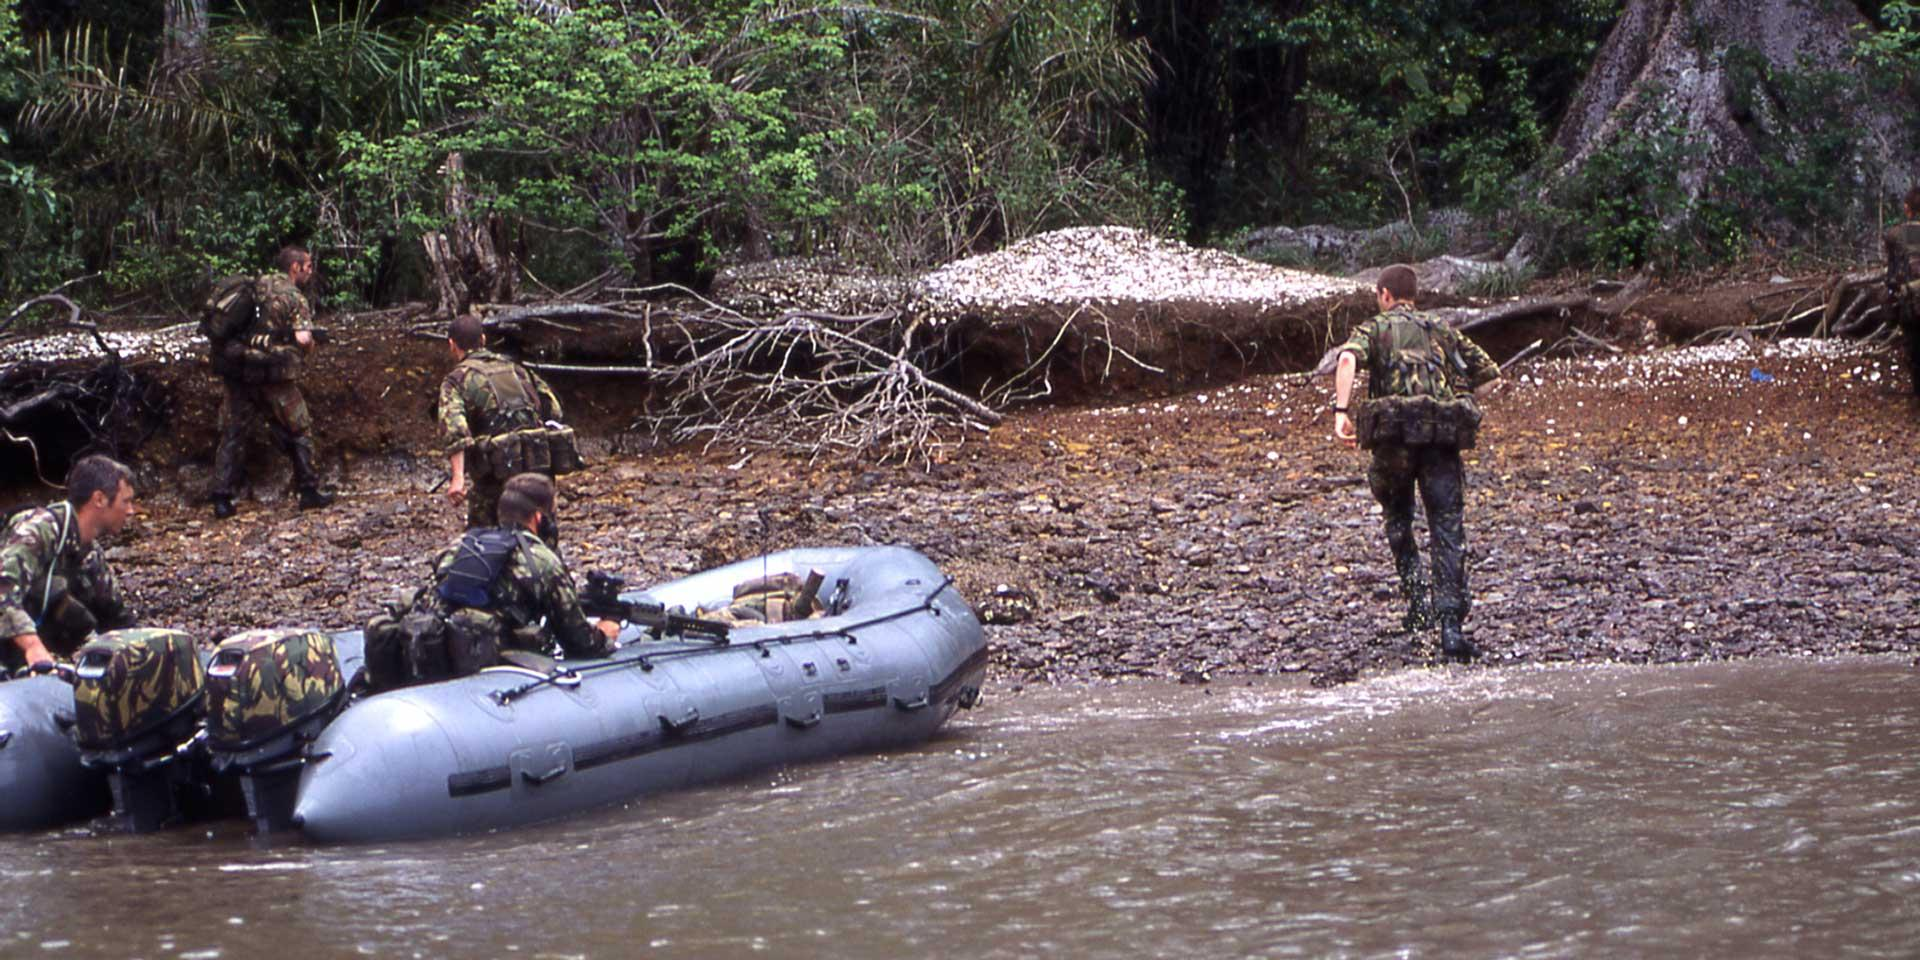 Special Forces deploy by boat during Operation Barras, September 2000